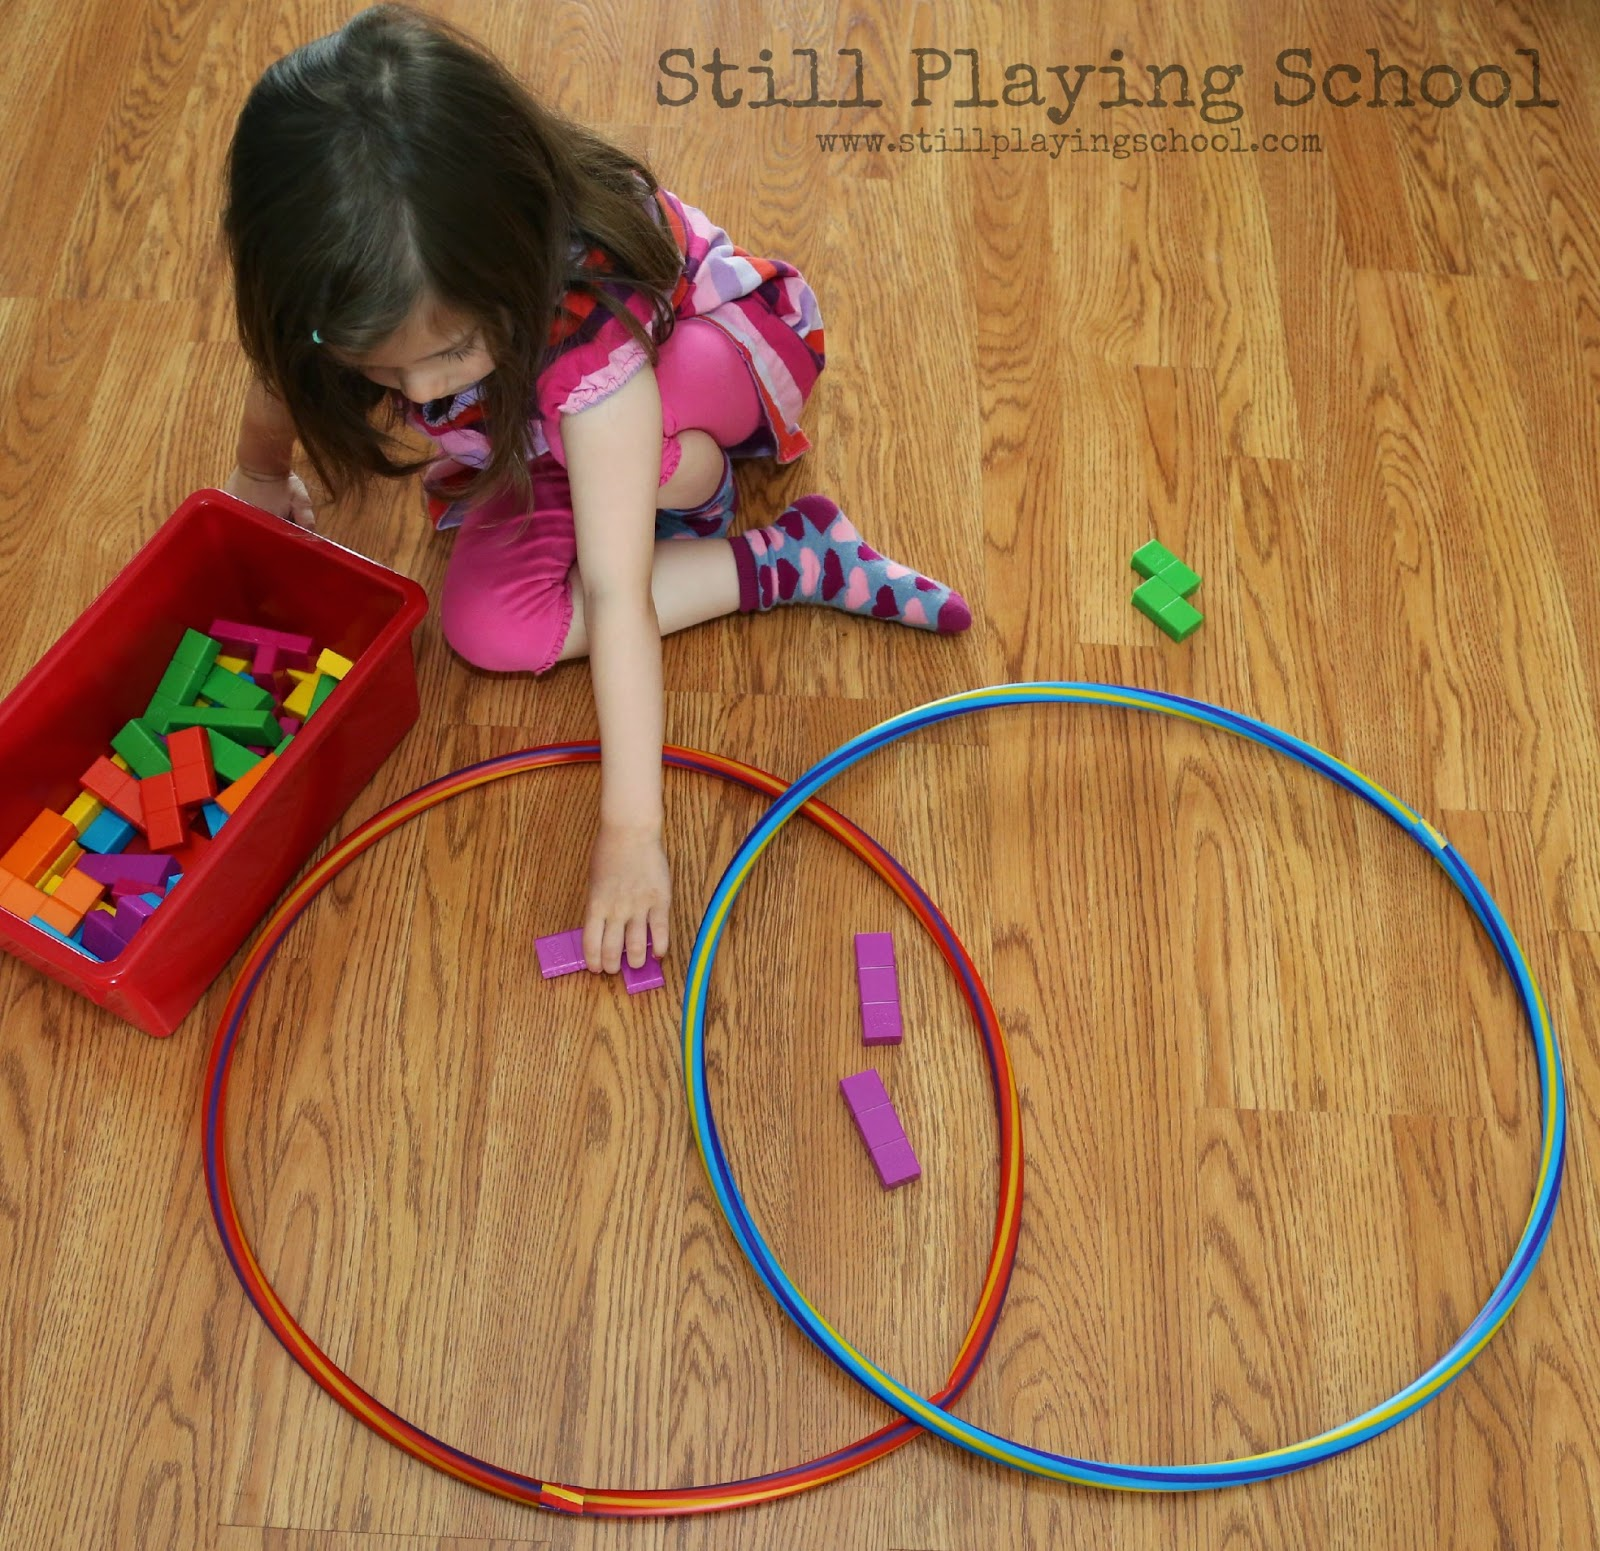 venn diagram sorting games invisible fence gps hula hoop still playing school